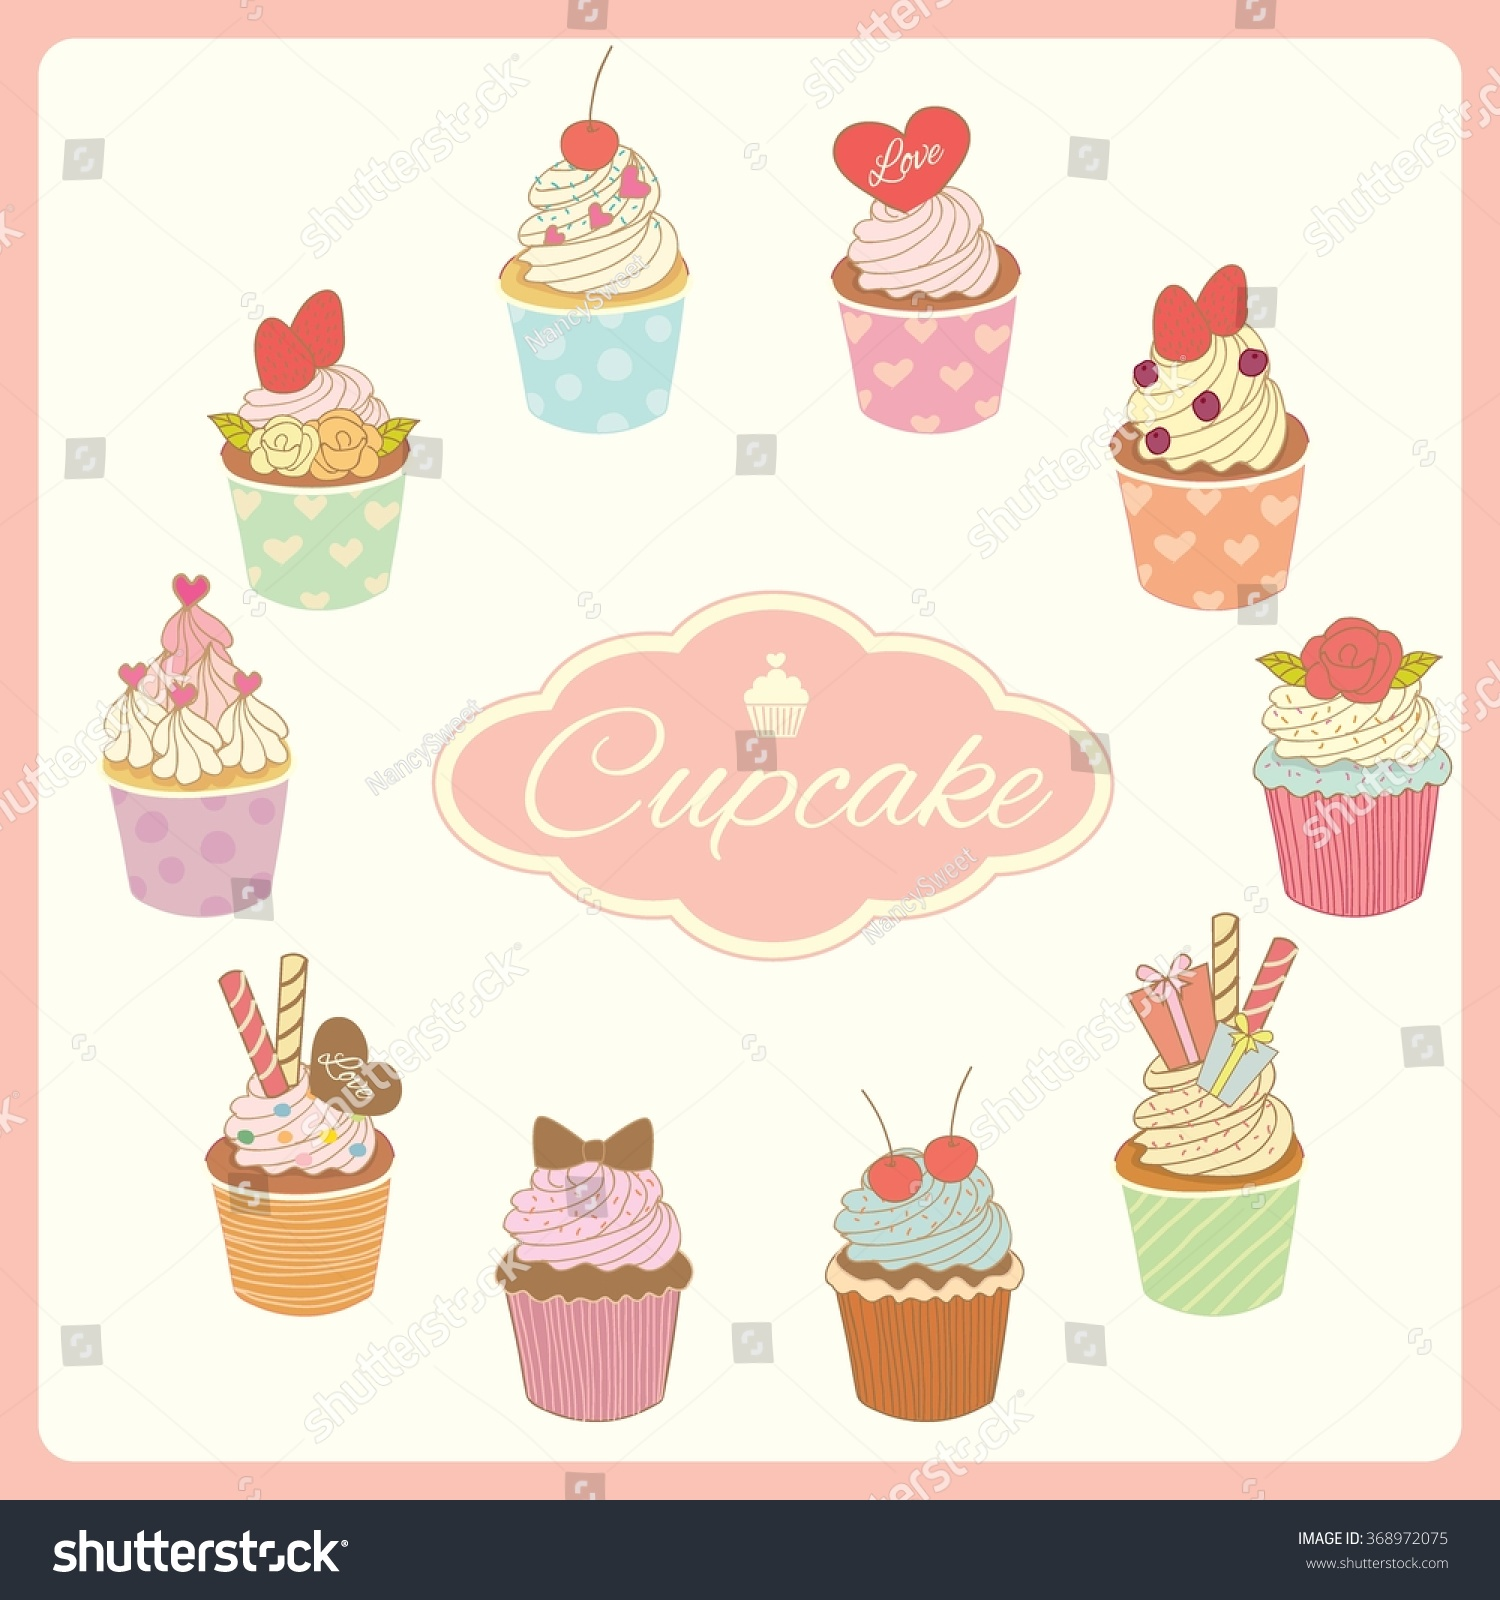 vector drawing bakery cafe cupcakes decoration stock vector